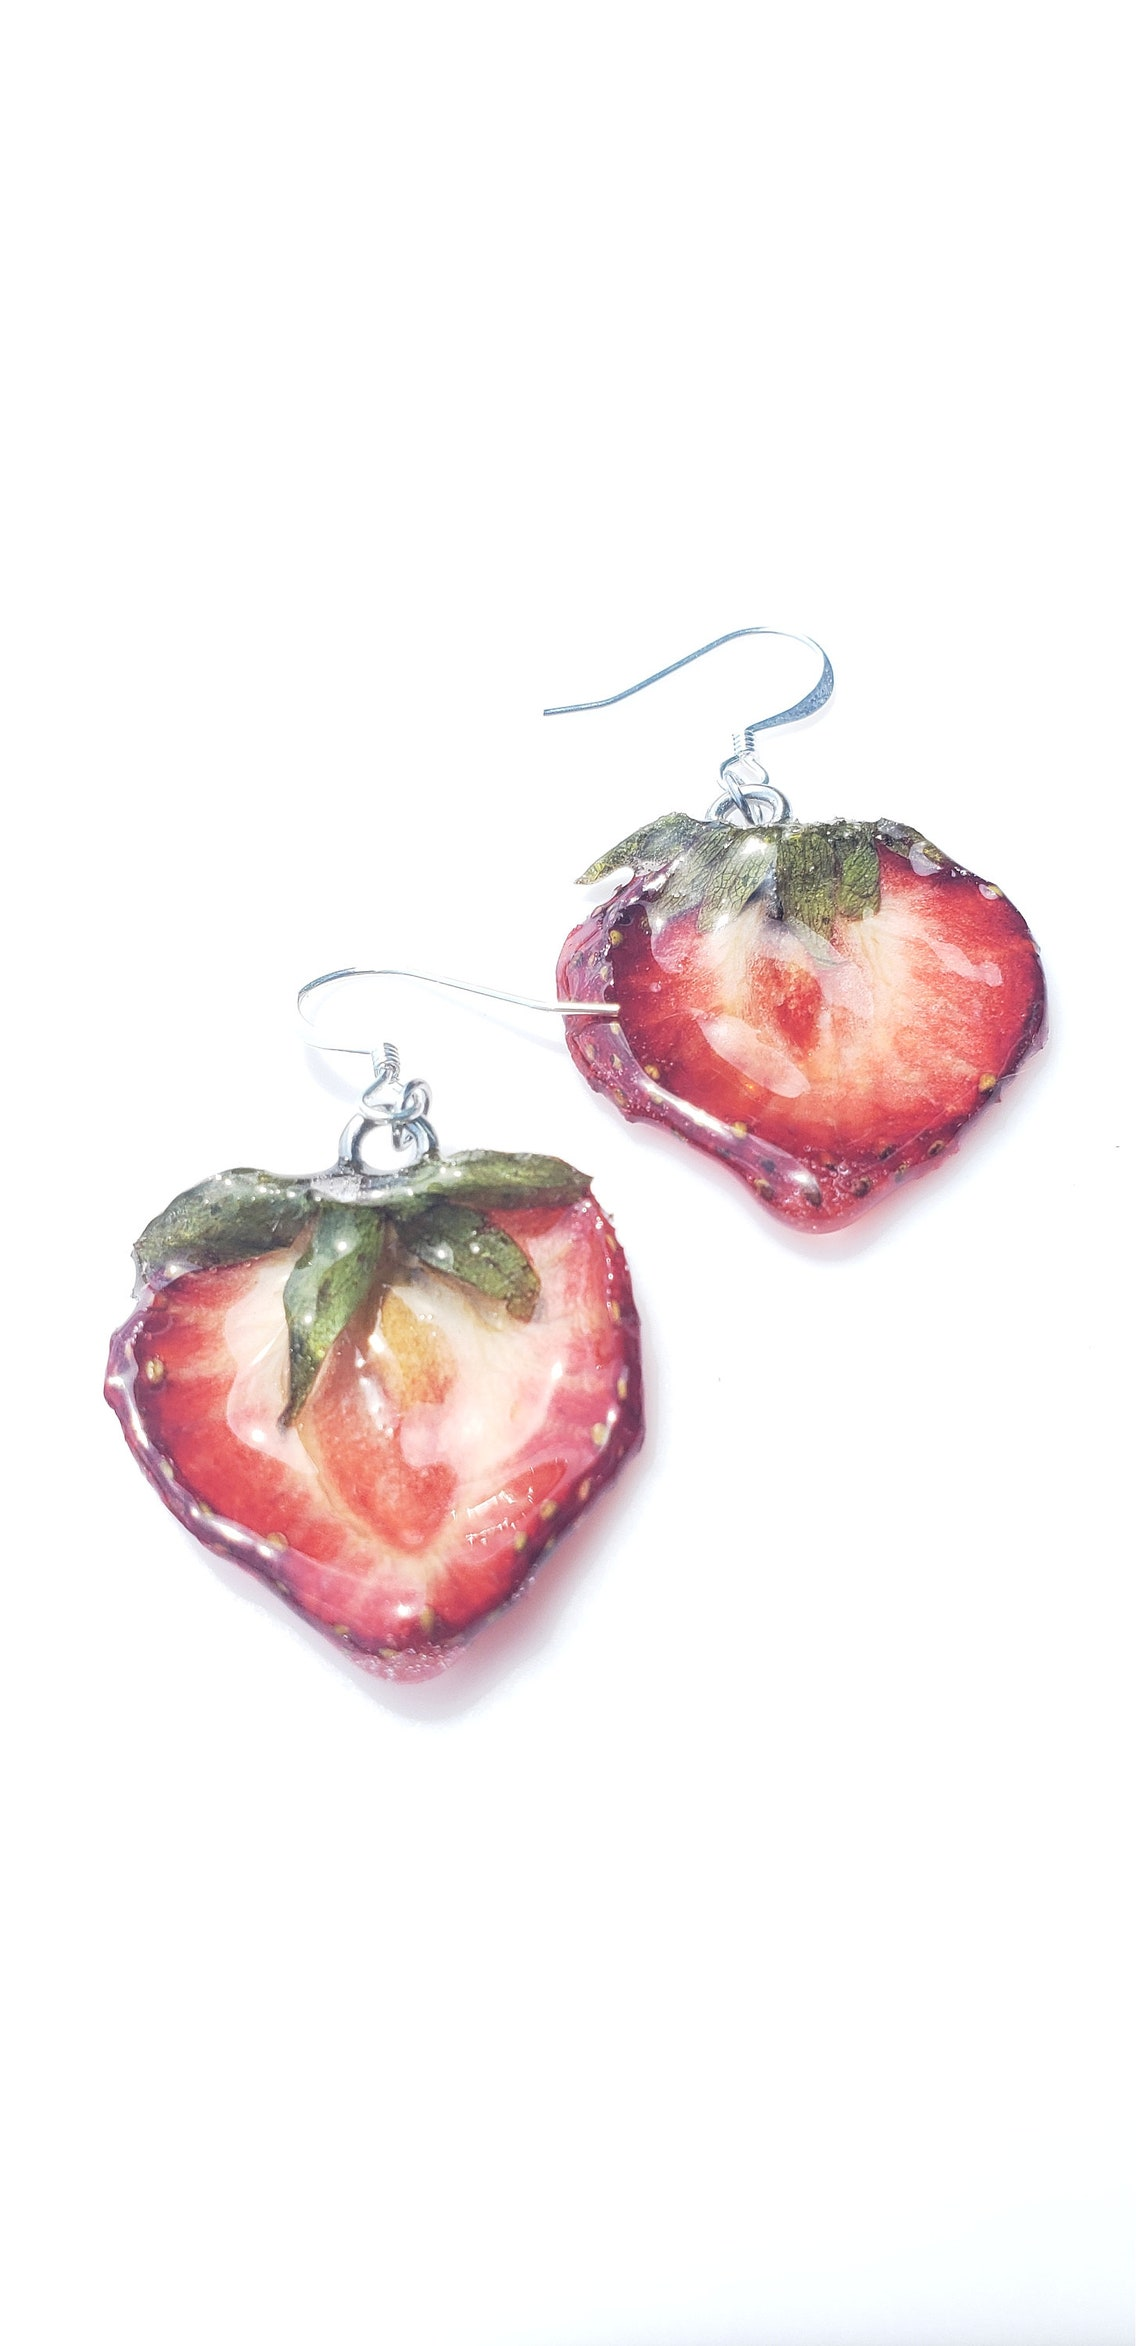 Strawberry Earrings XS real fruit jewelry fruit jewelry image 0